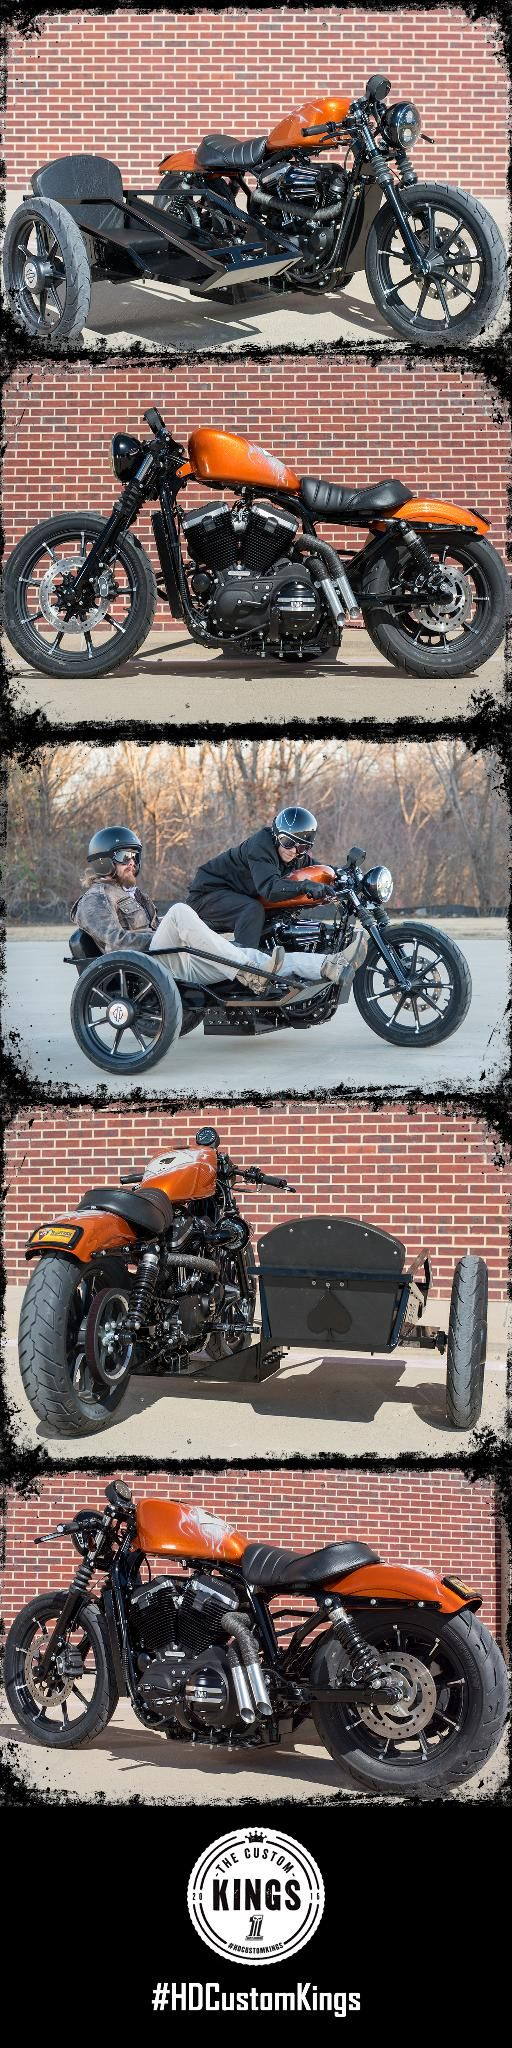 Maverick Harley-Davidson's build features a modernized sidecar modeled after the vintage style racers from the past. | Harley-Davidson #HDCustomKings